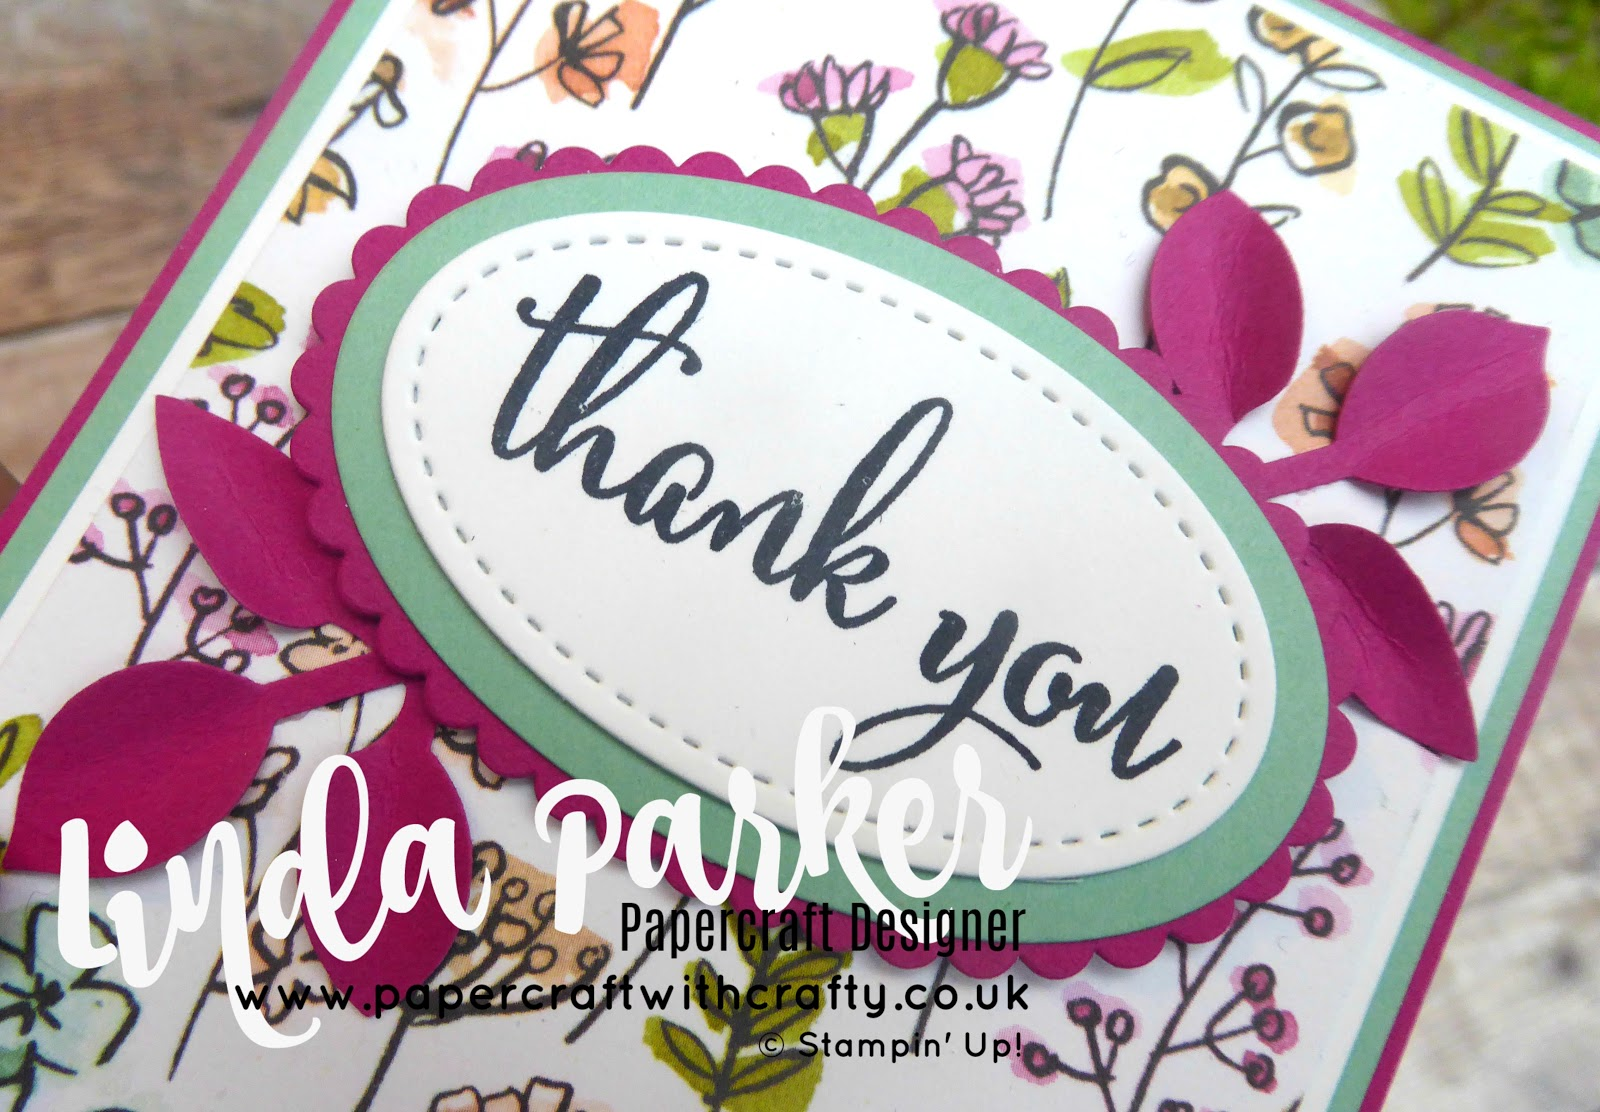 Linda Parker UK Independent Stampin' Up! Demonstrator from